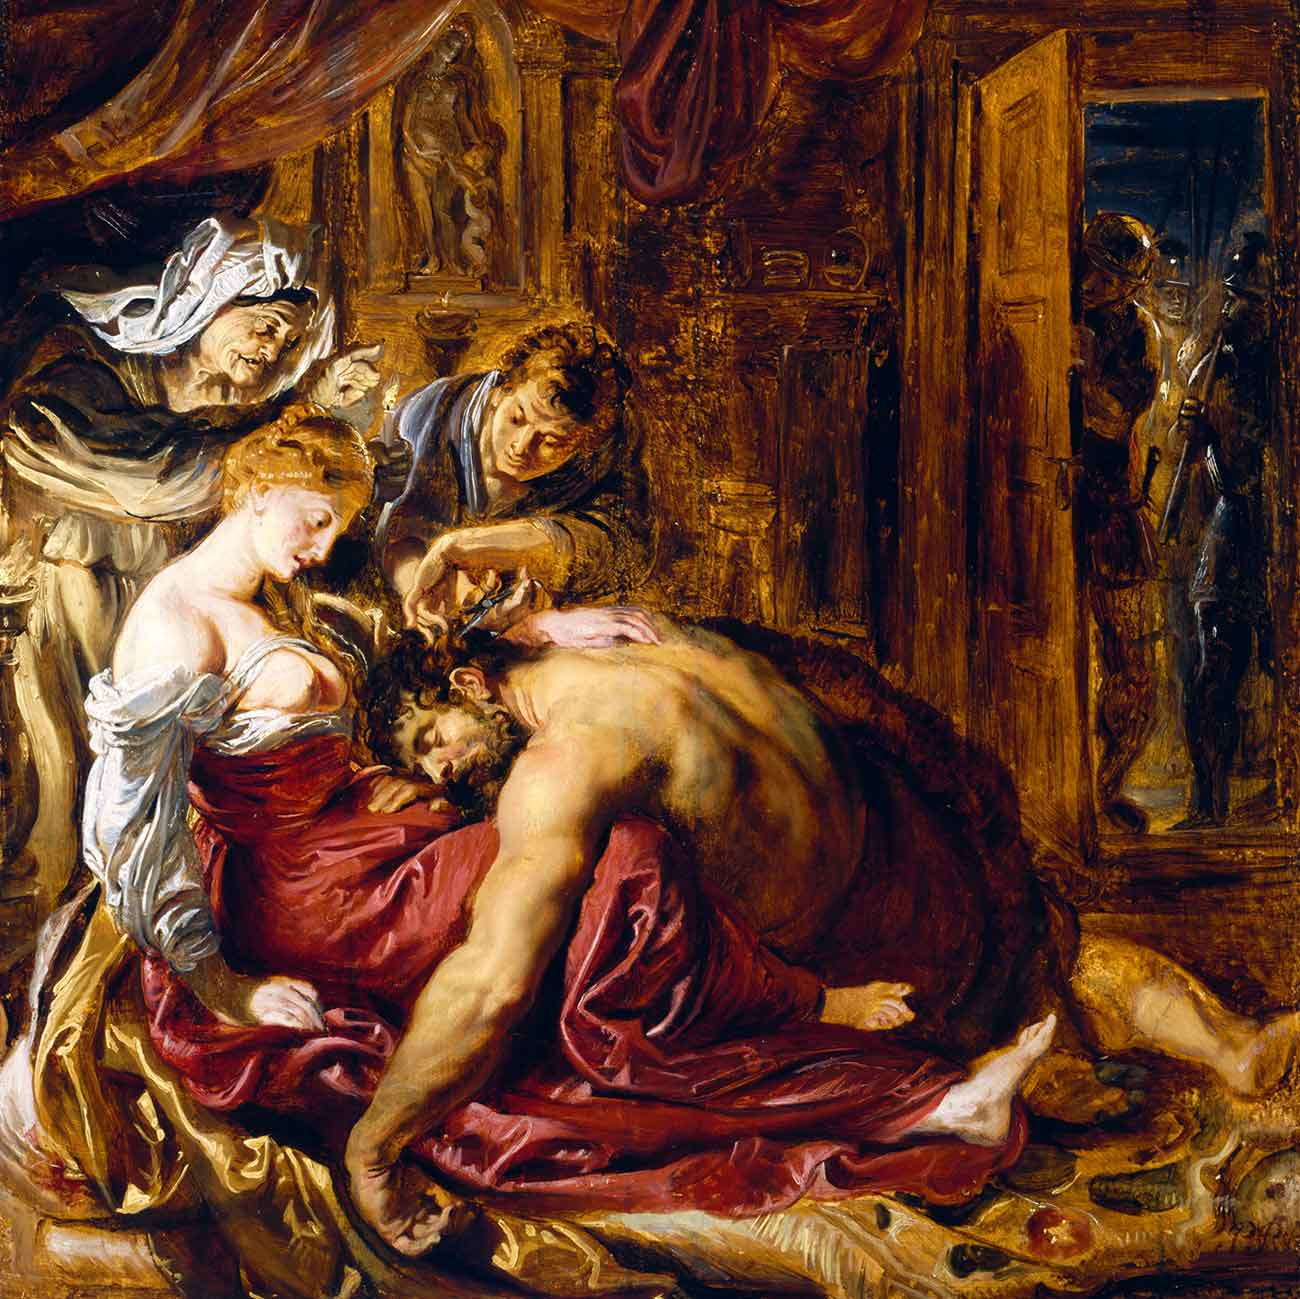 samson and delillah Passion, desire, lust and romance surround the tragic love story of samson and delilah this biblical tale begins with a prophetic announcement of a young man who will be mightily used of the lord.